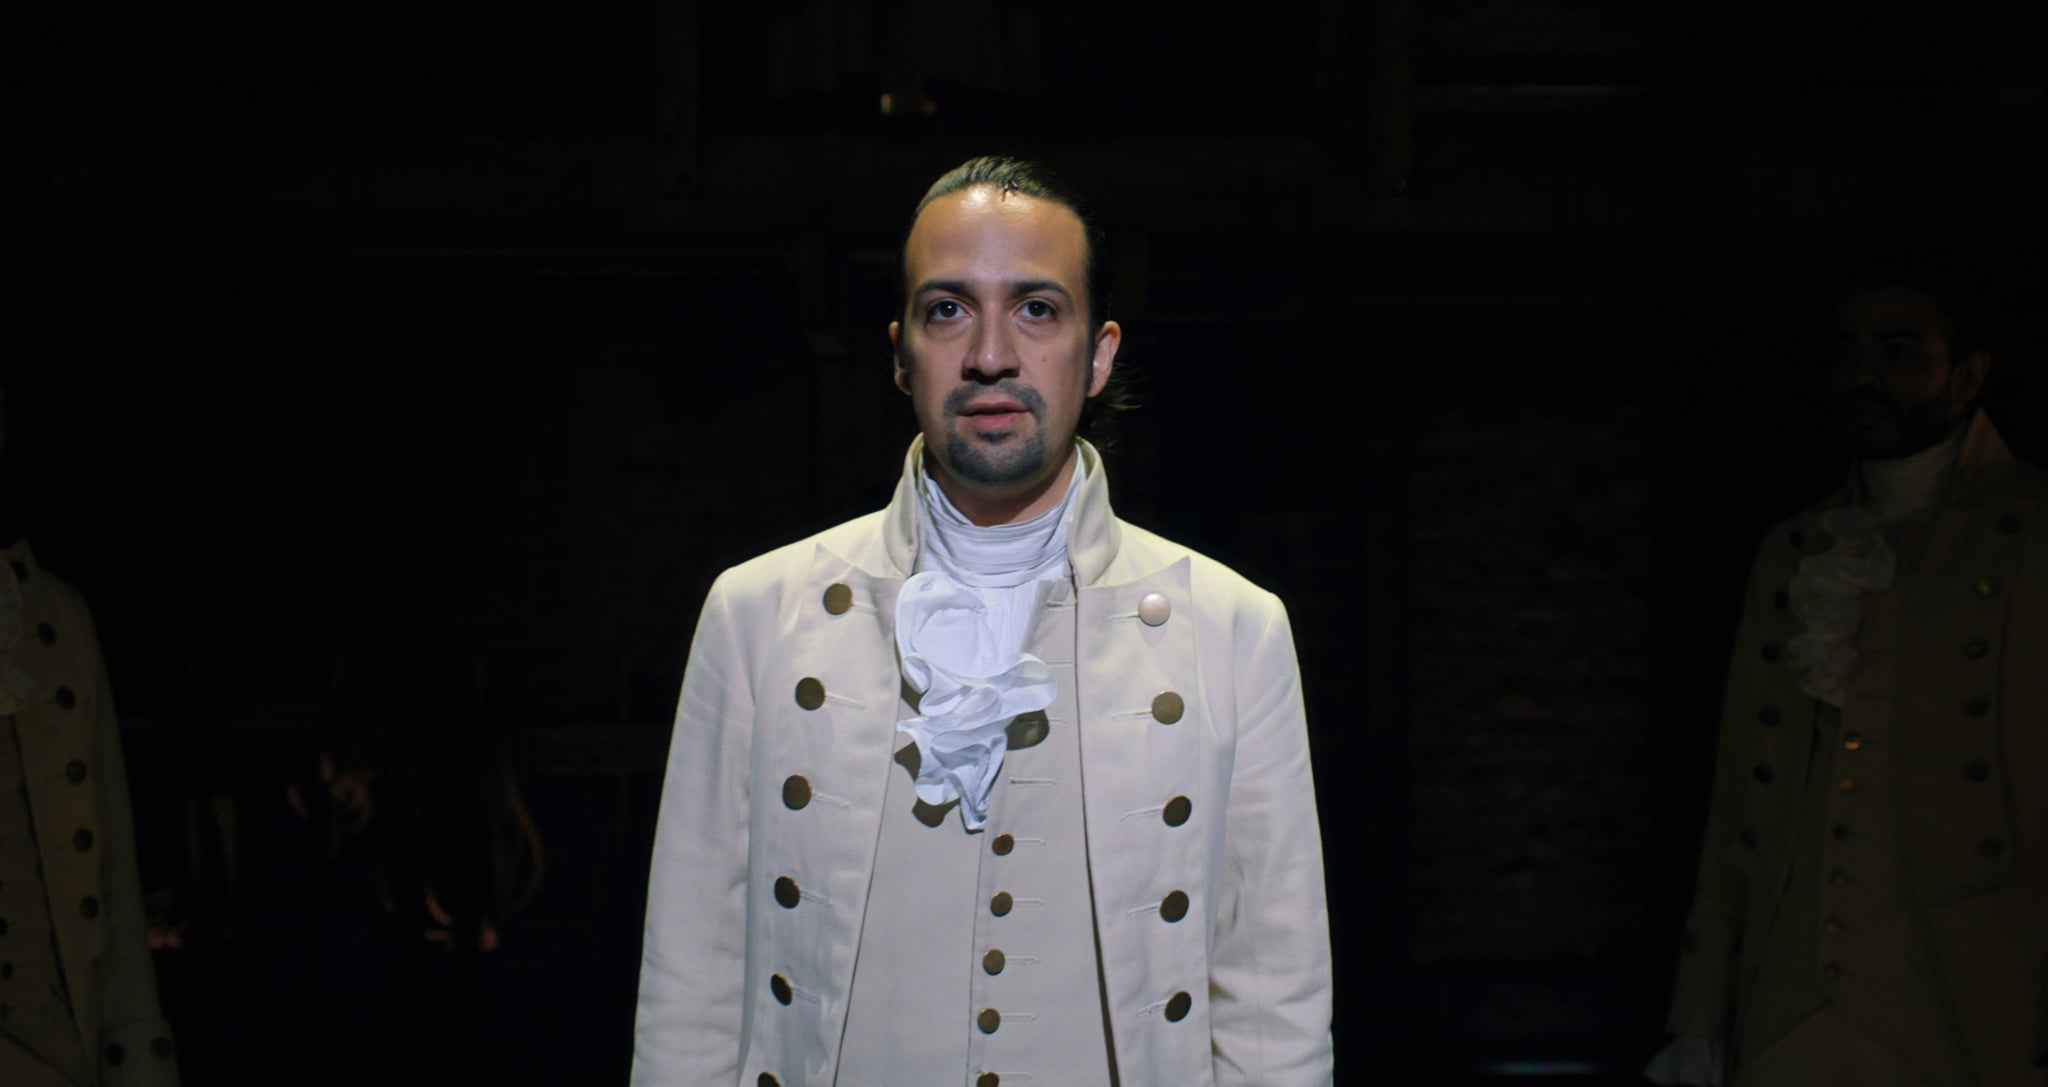 HAMILTON, Lin-Manuel Miranda as Alexander Hamilton, 2020.  Disney+ / Courtesy Everett Collection